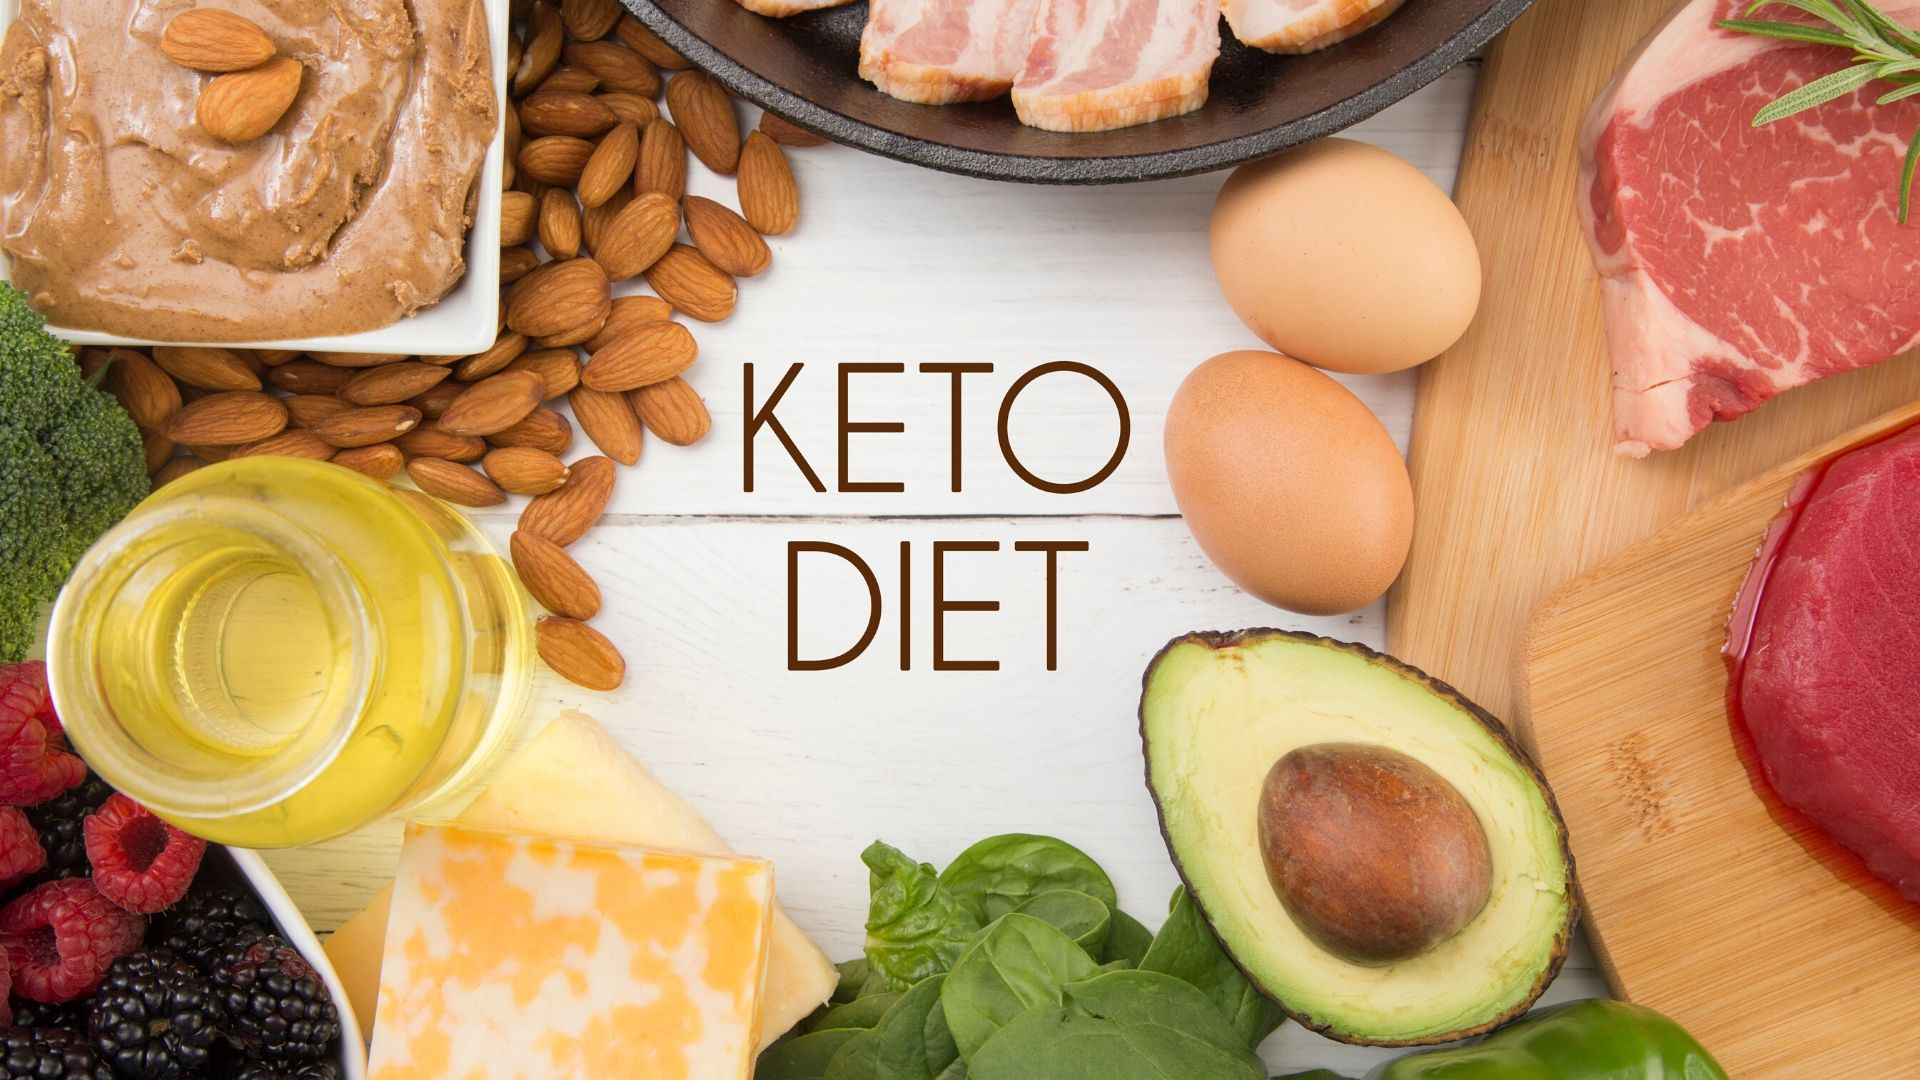 Keto diet and ketogenic way of eating